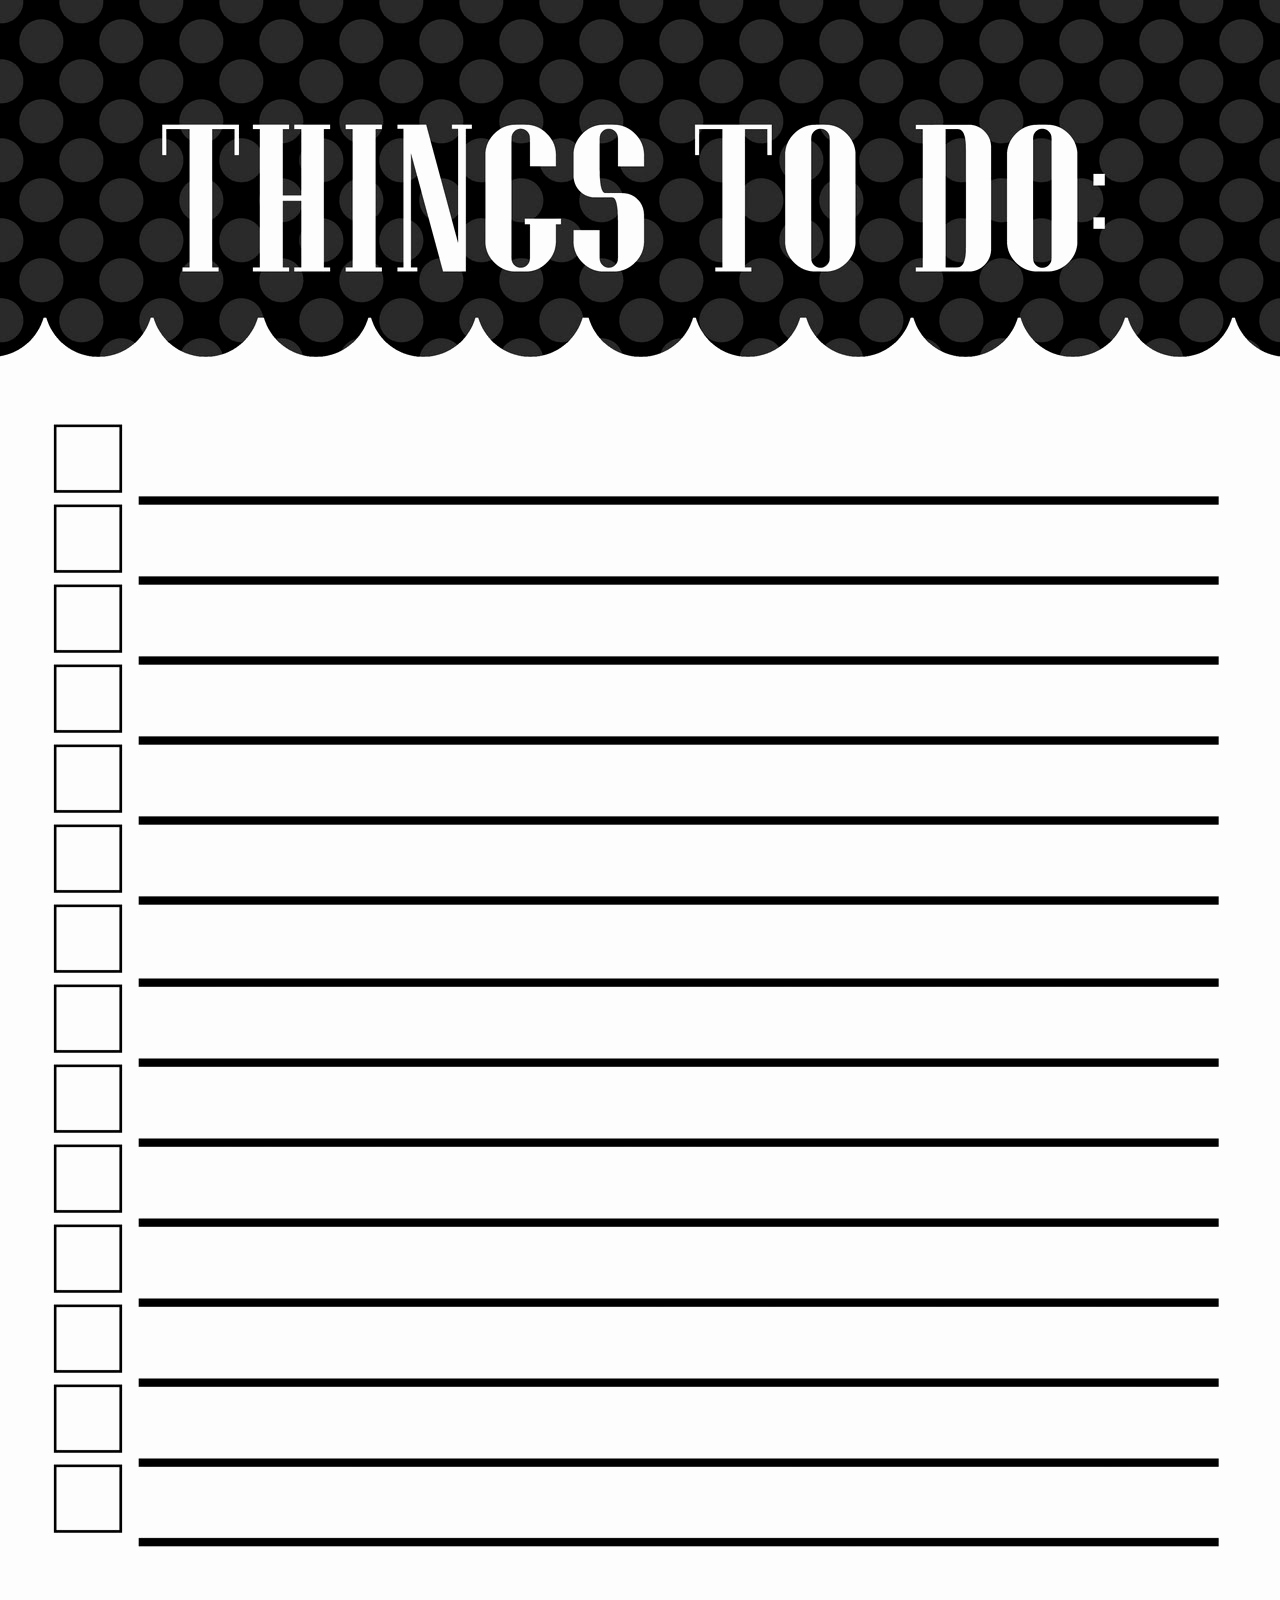 To Do List Pdf Lovely Free Printable to Do List Templates